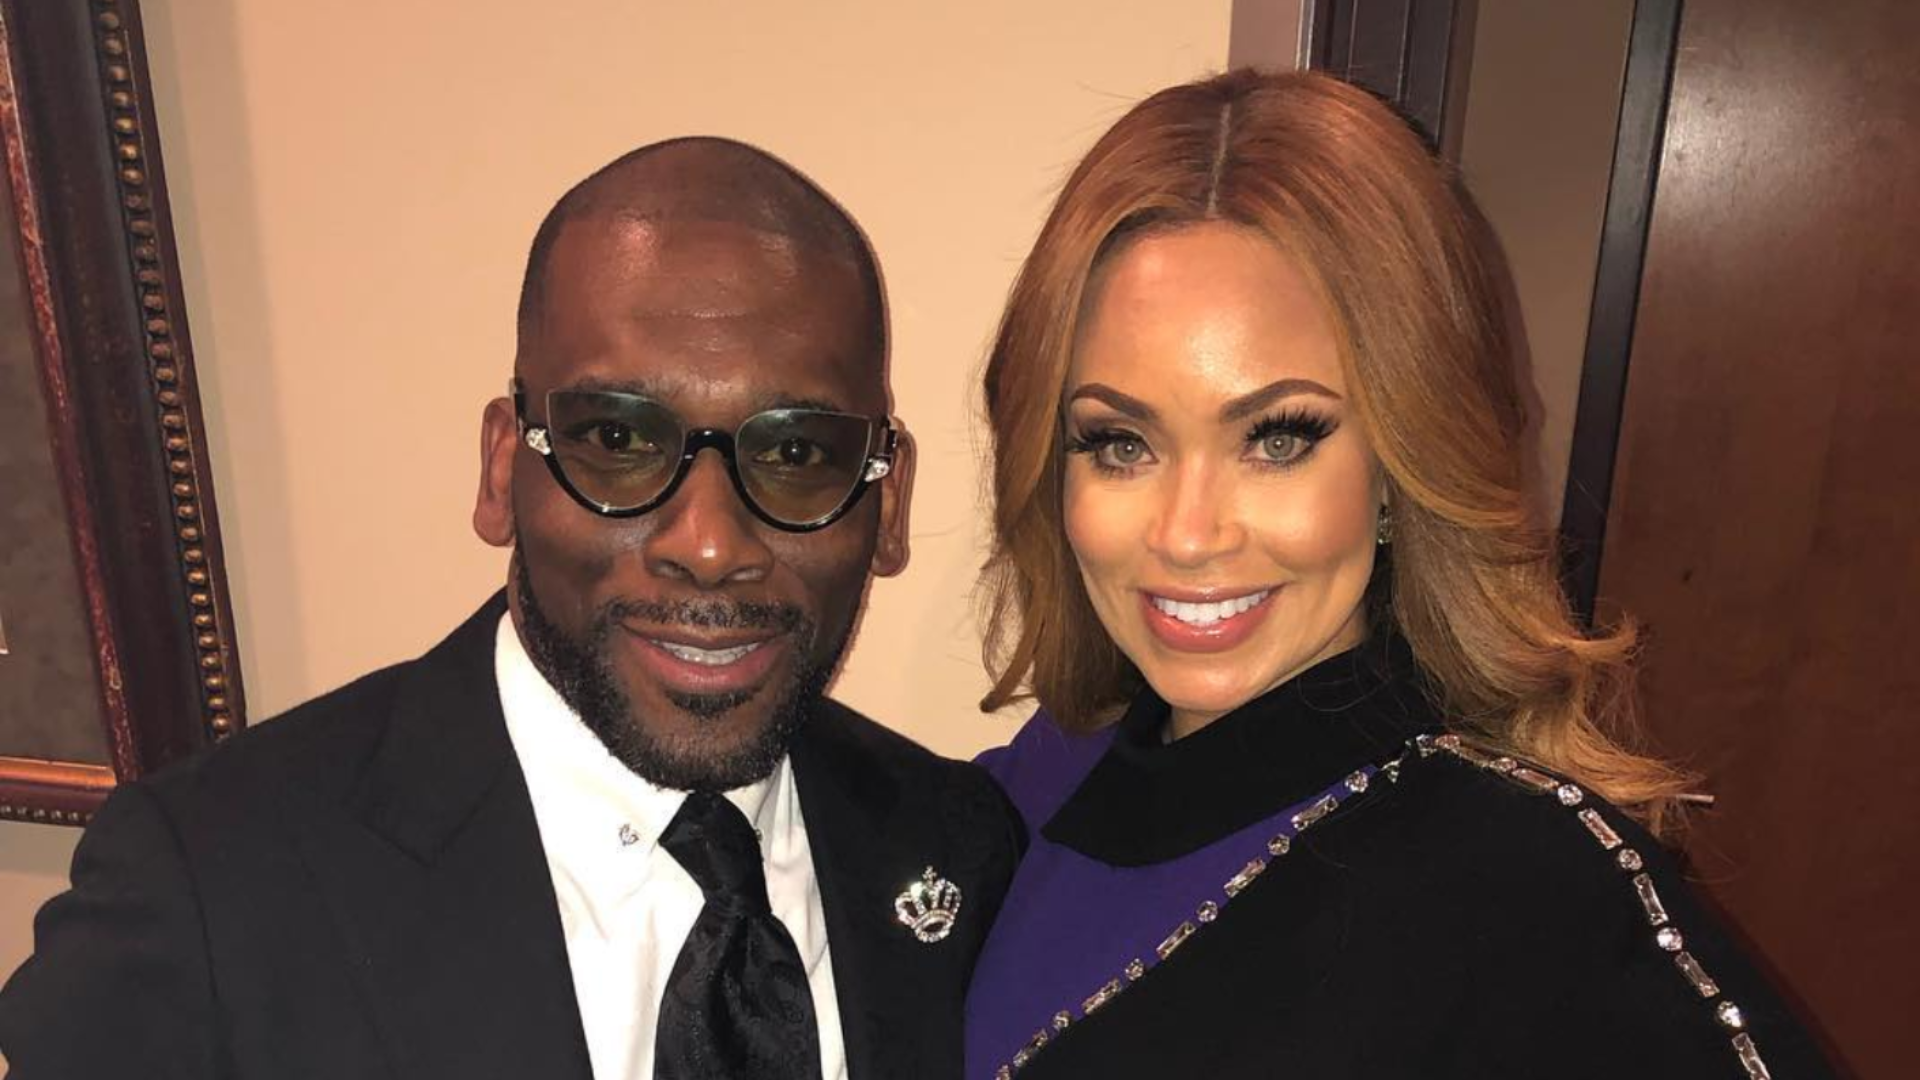 Gizelle Bryant's Daughters Now Approve Of Relationship With Ex-Husband Jamal Bryant